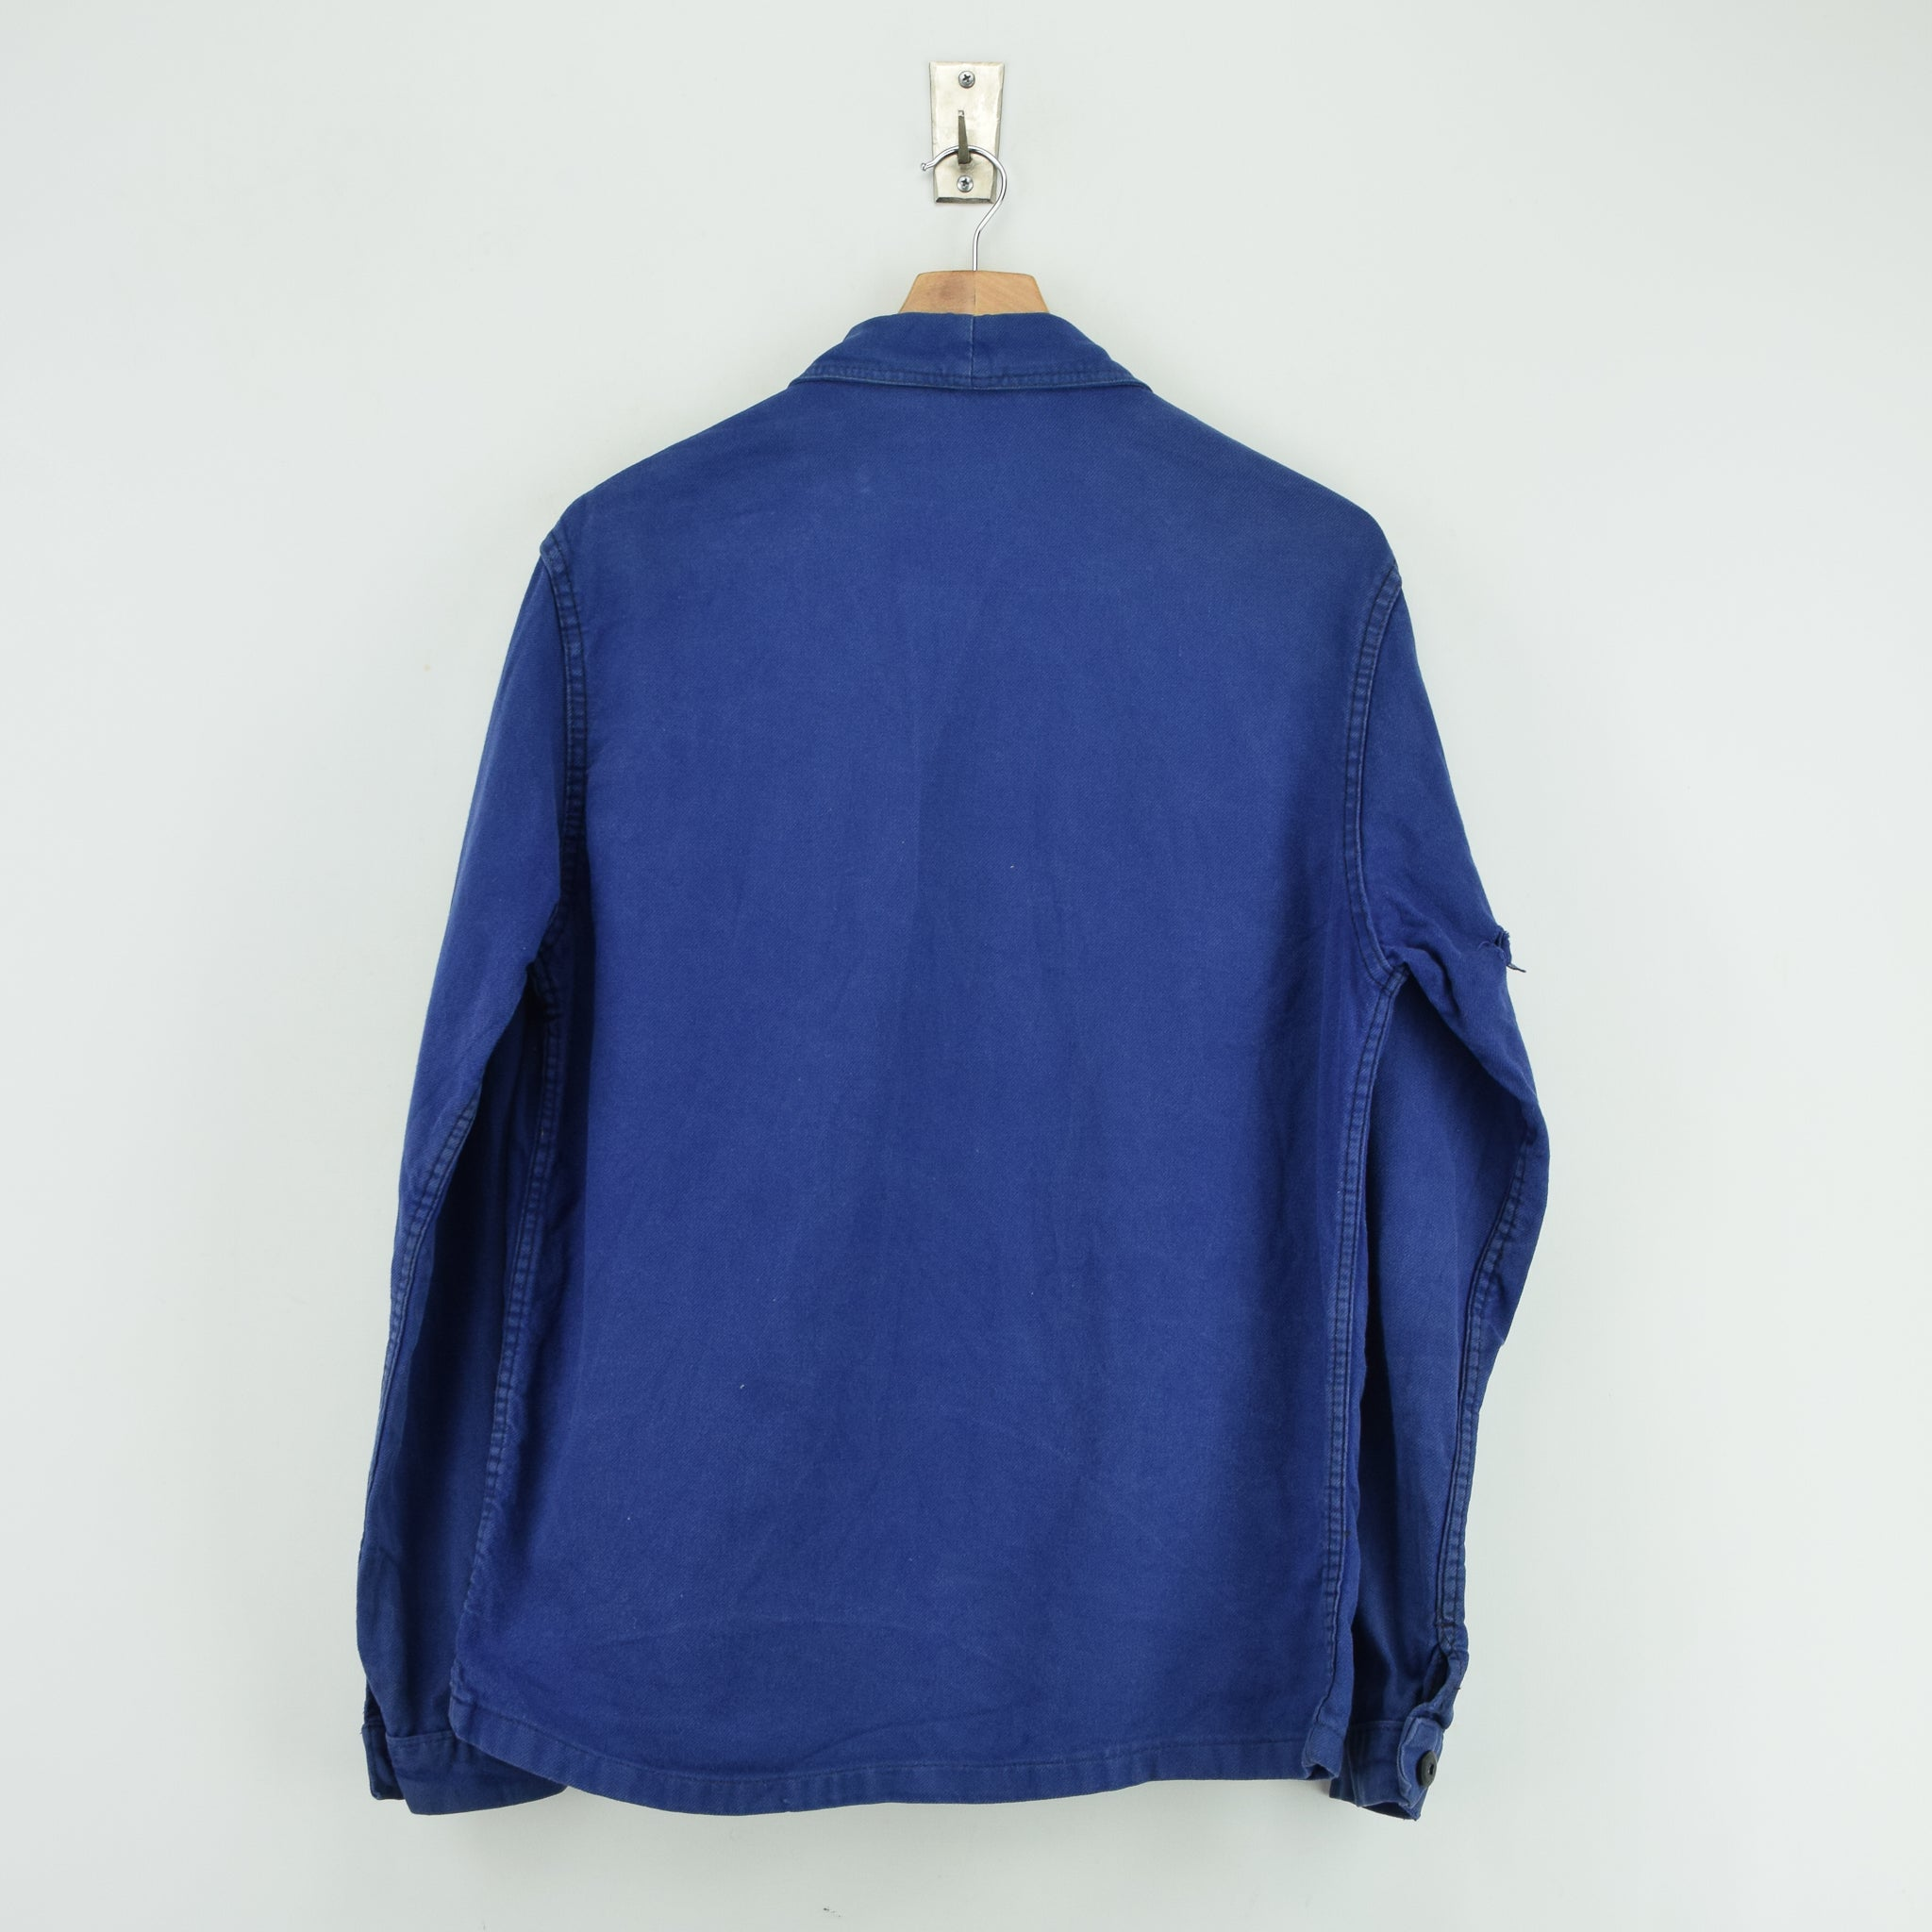 Vintage Washed Blue French Worker Sanforized Cotton Chore Jacket M back